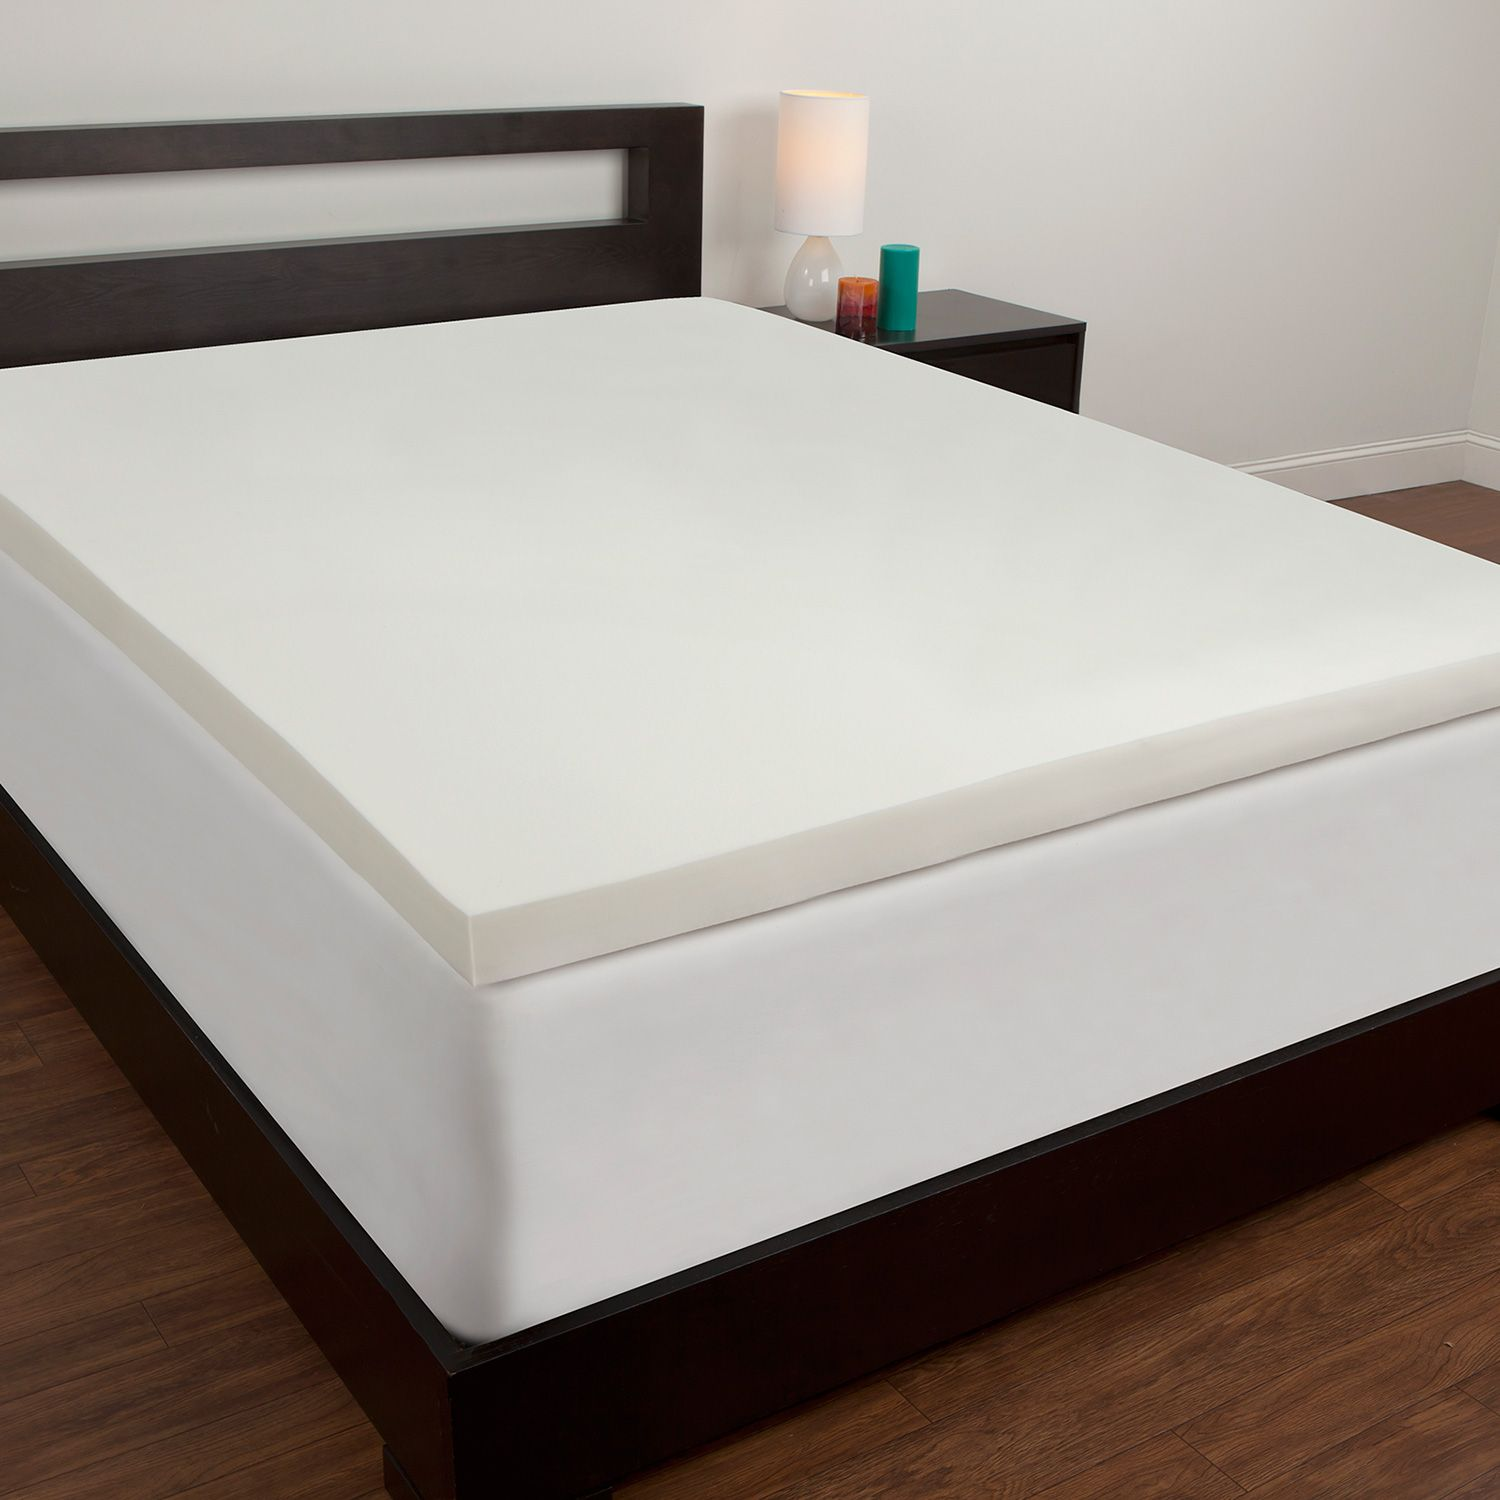 Cooling Mattress Pad for Tempur Pedic that Will Make You Sleep